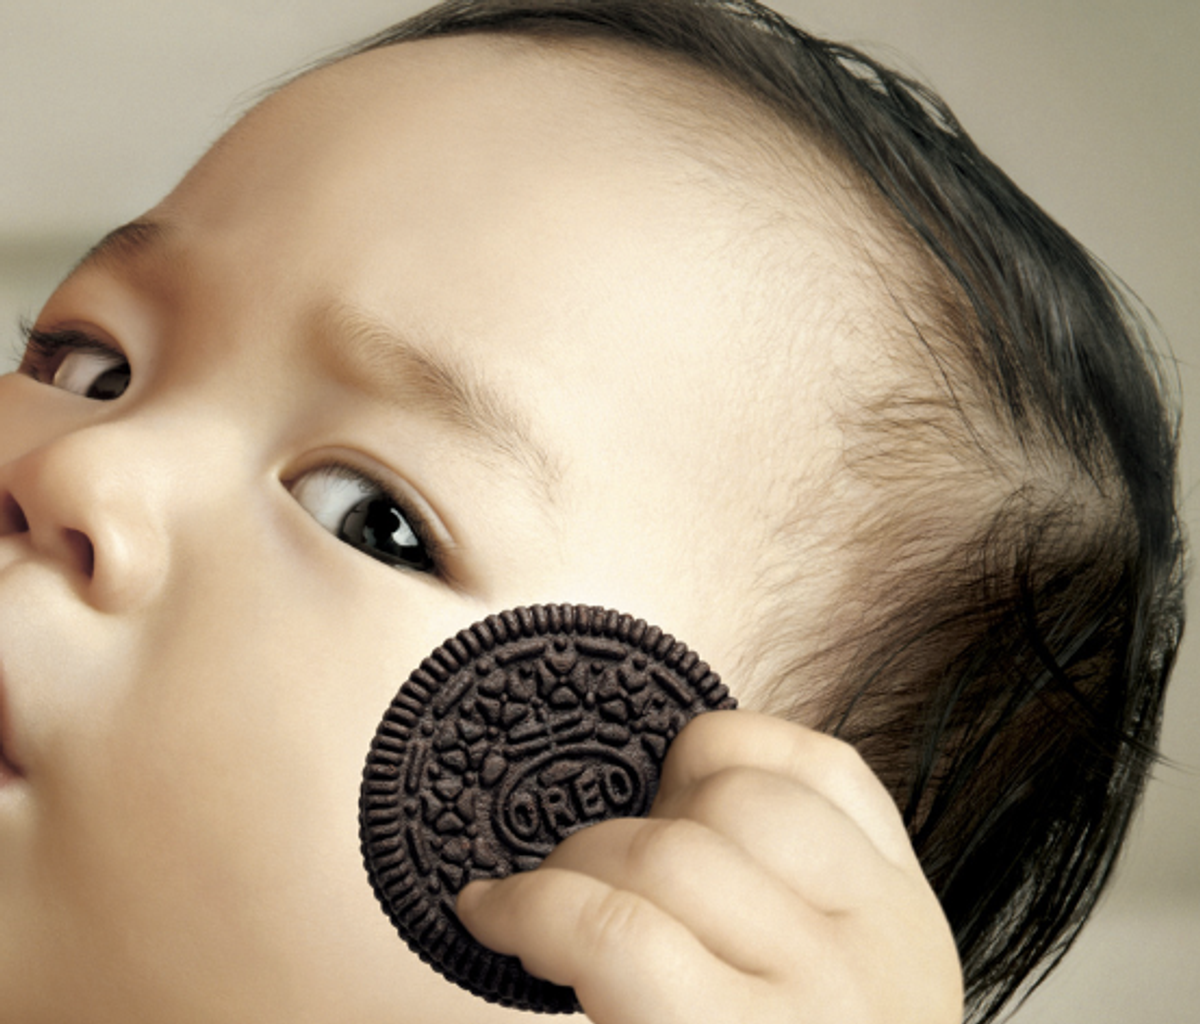 Detail from Oreo ad